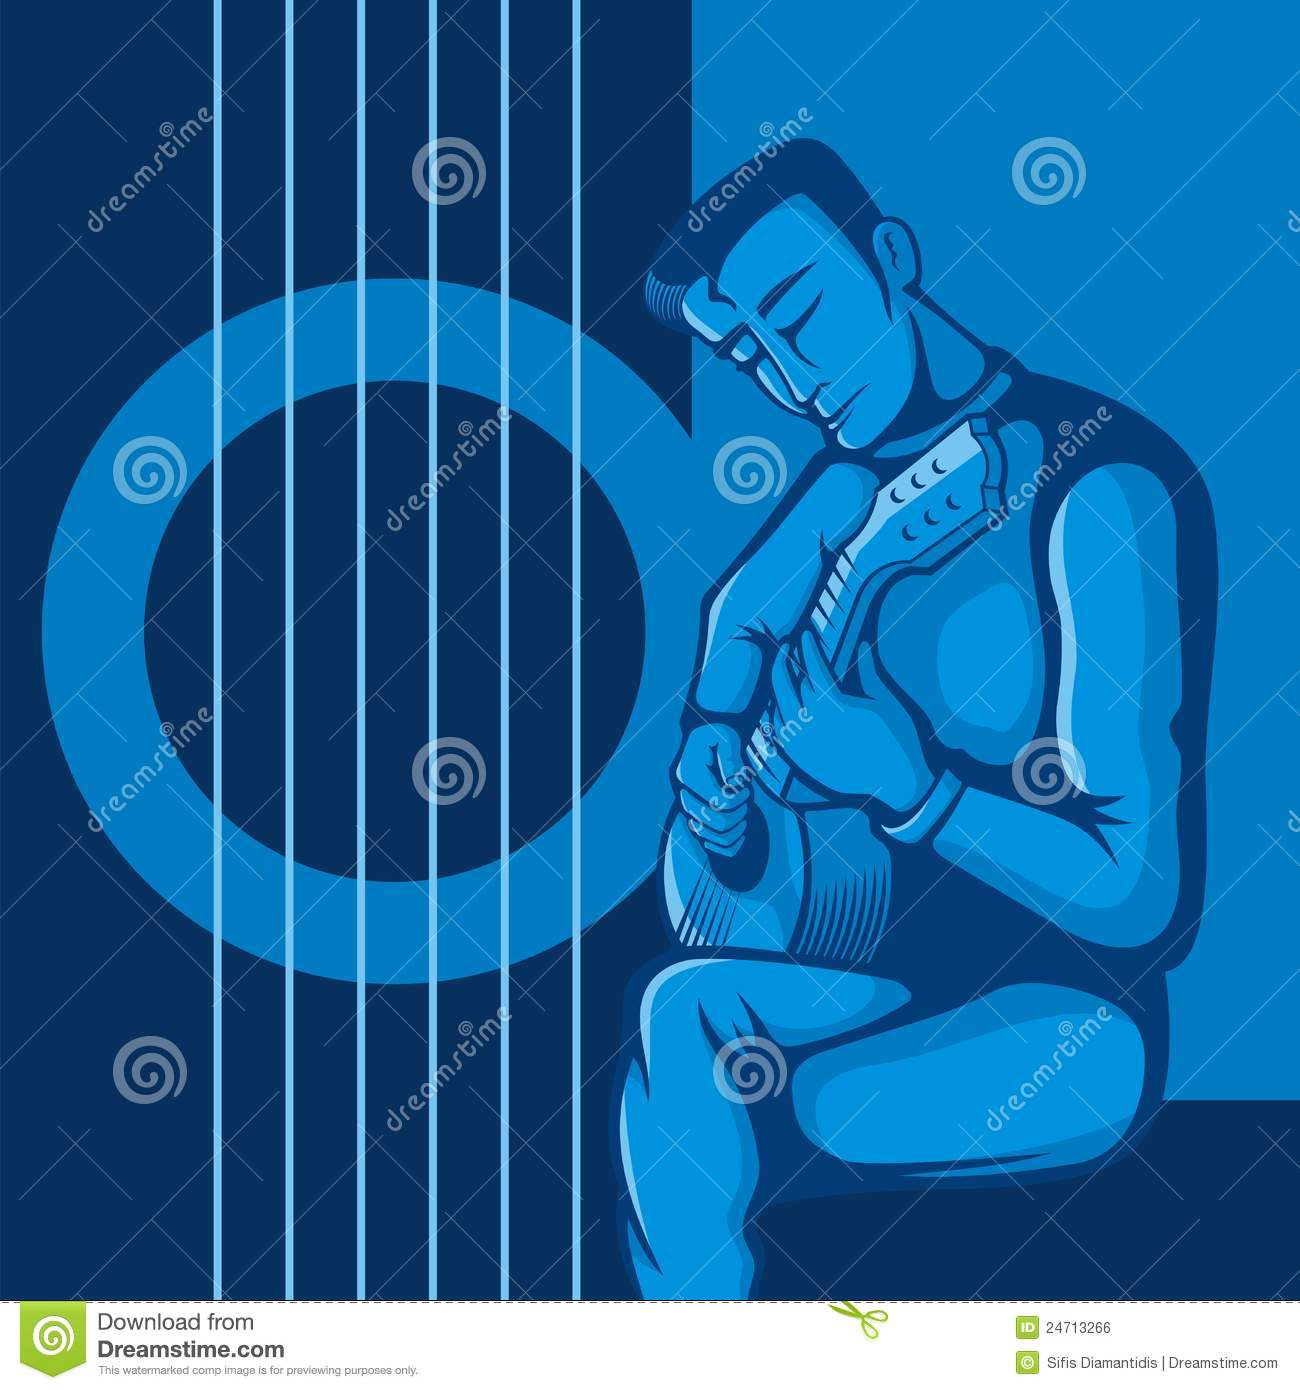 O guitarrista no azul